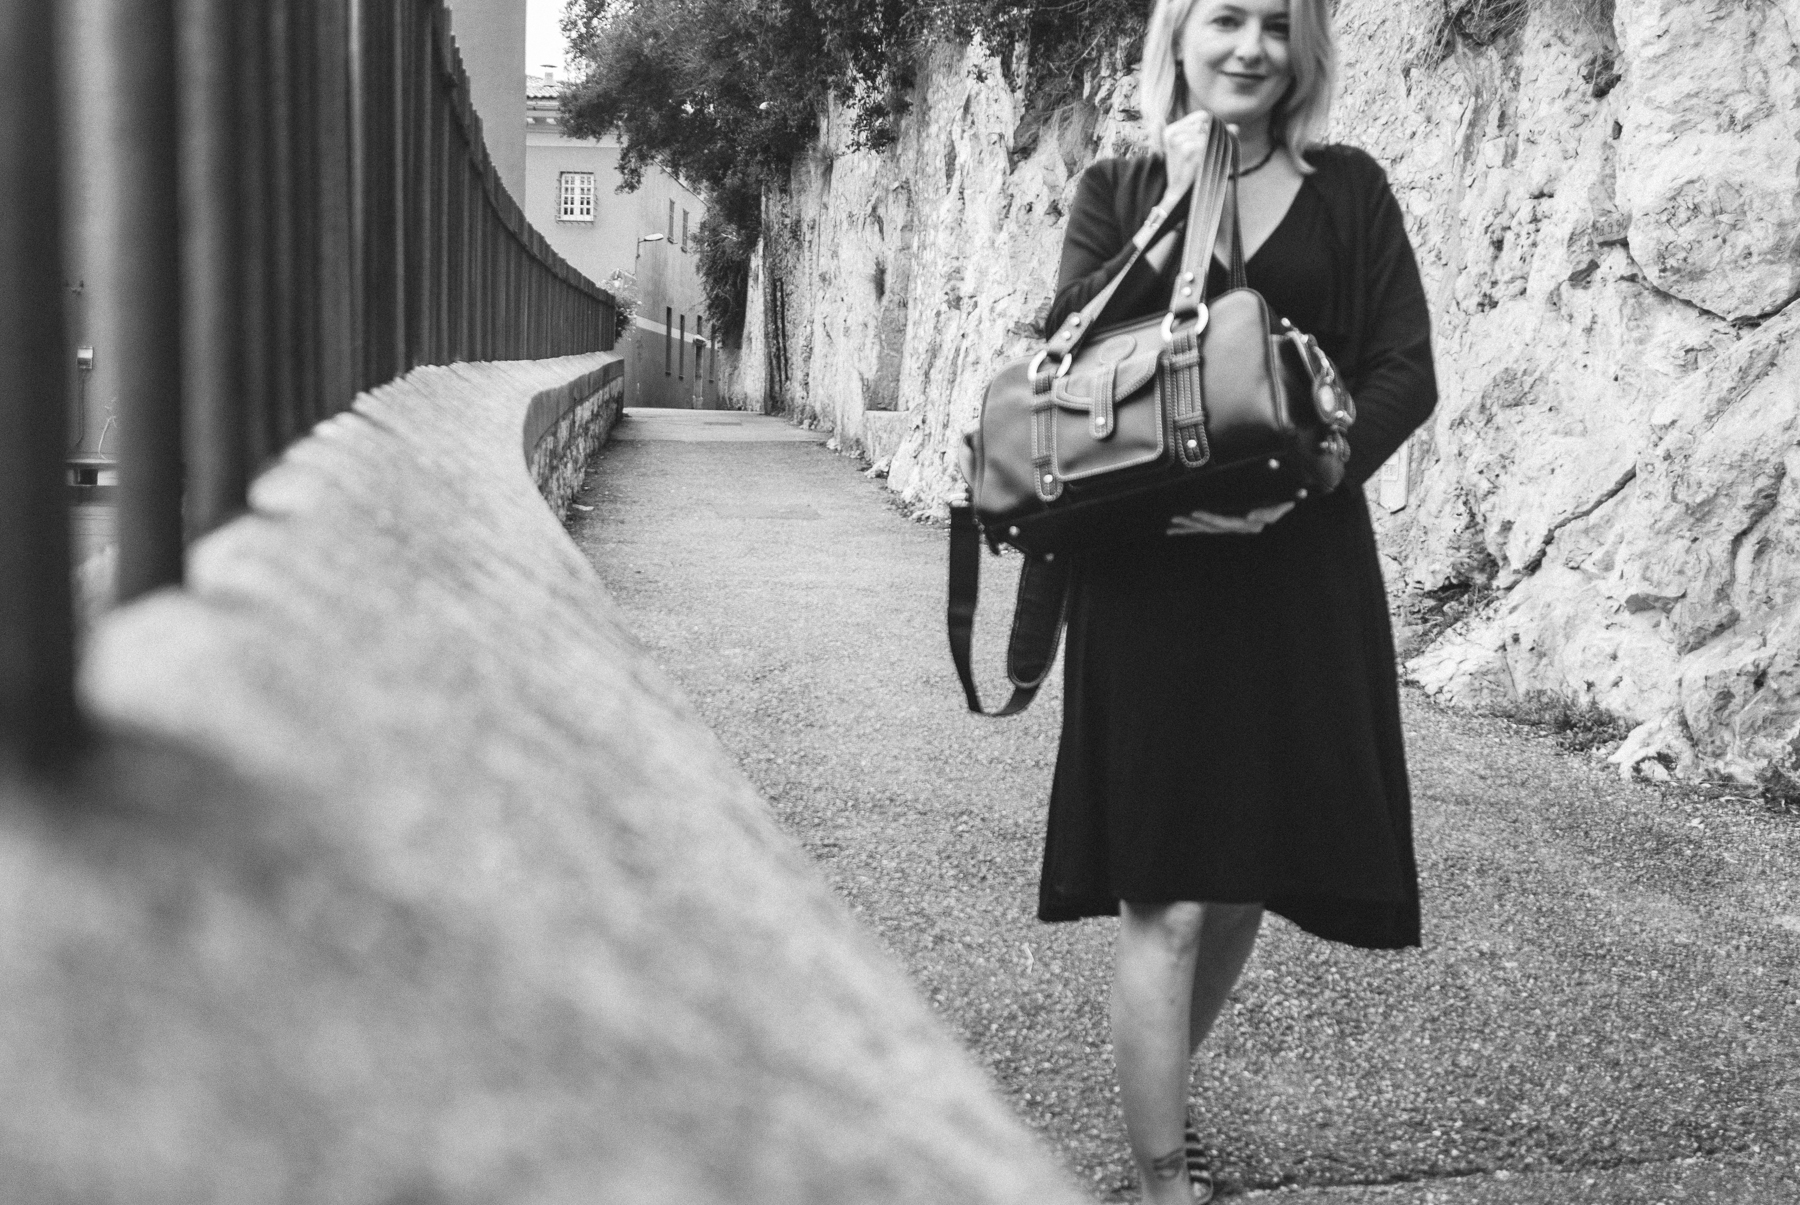 Photographer LaRae Lobdell using Jill-e Designs camera bag in Villefranche-sur-Mer outside of Nice on the French Riviera, October 8, 2010.